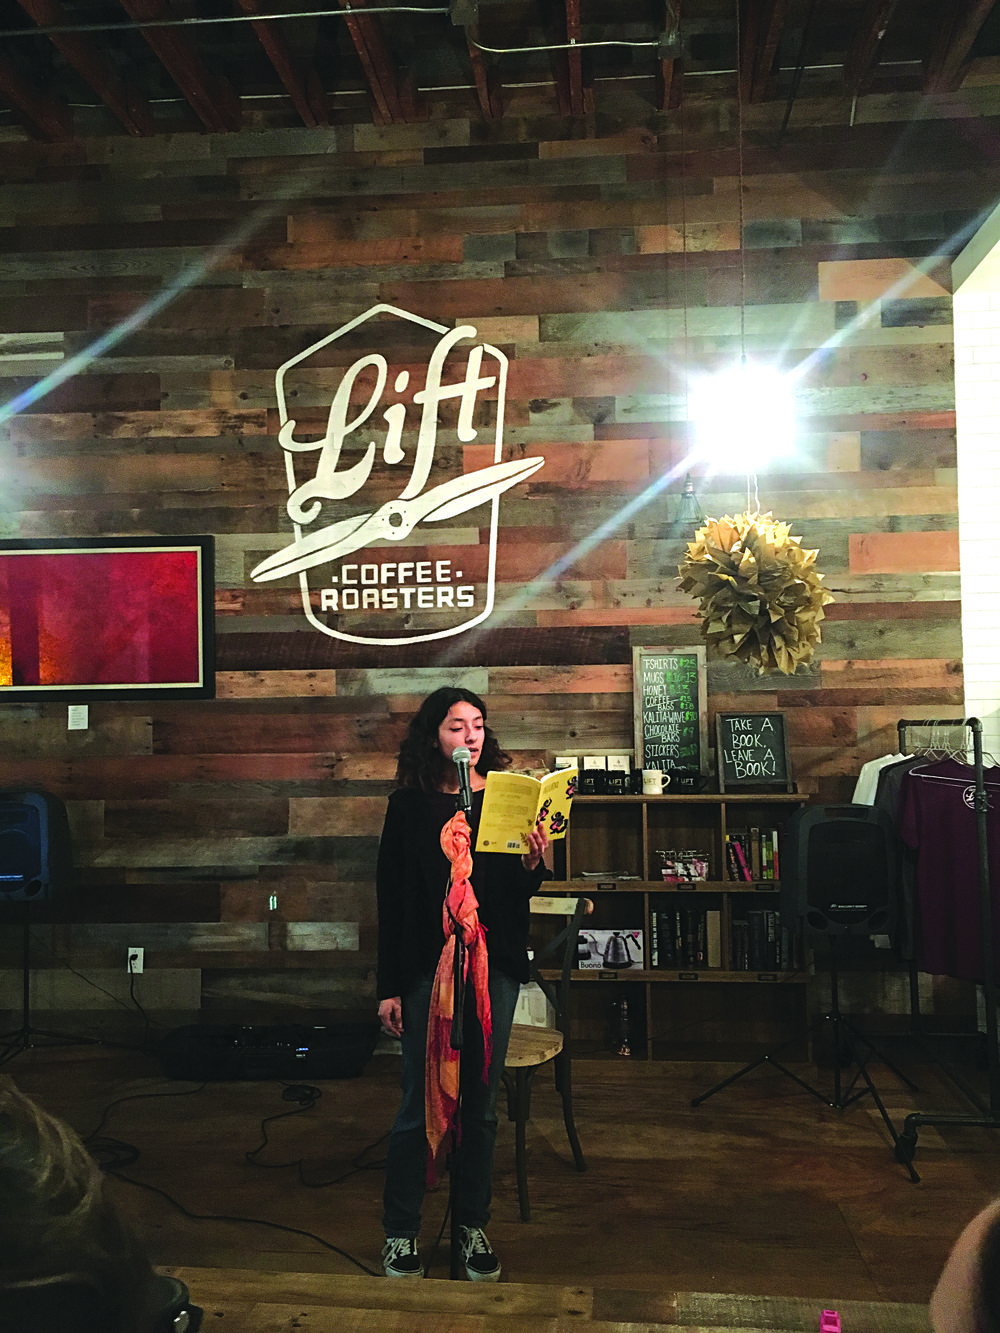 The atmosphere was full of poetic prose and Poet pride at Lift Coffee Roasters